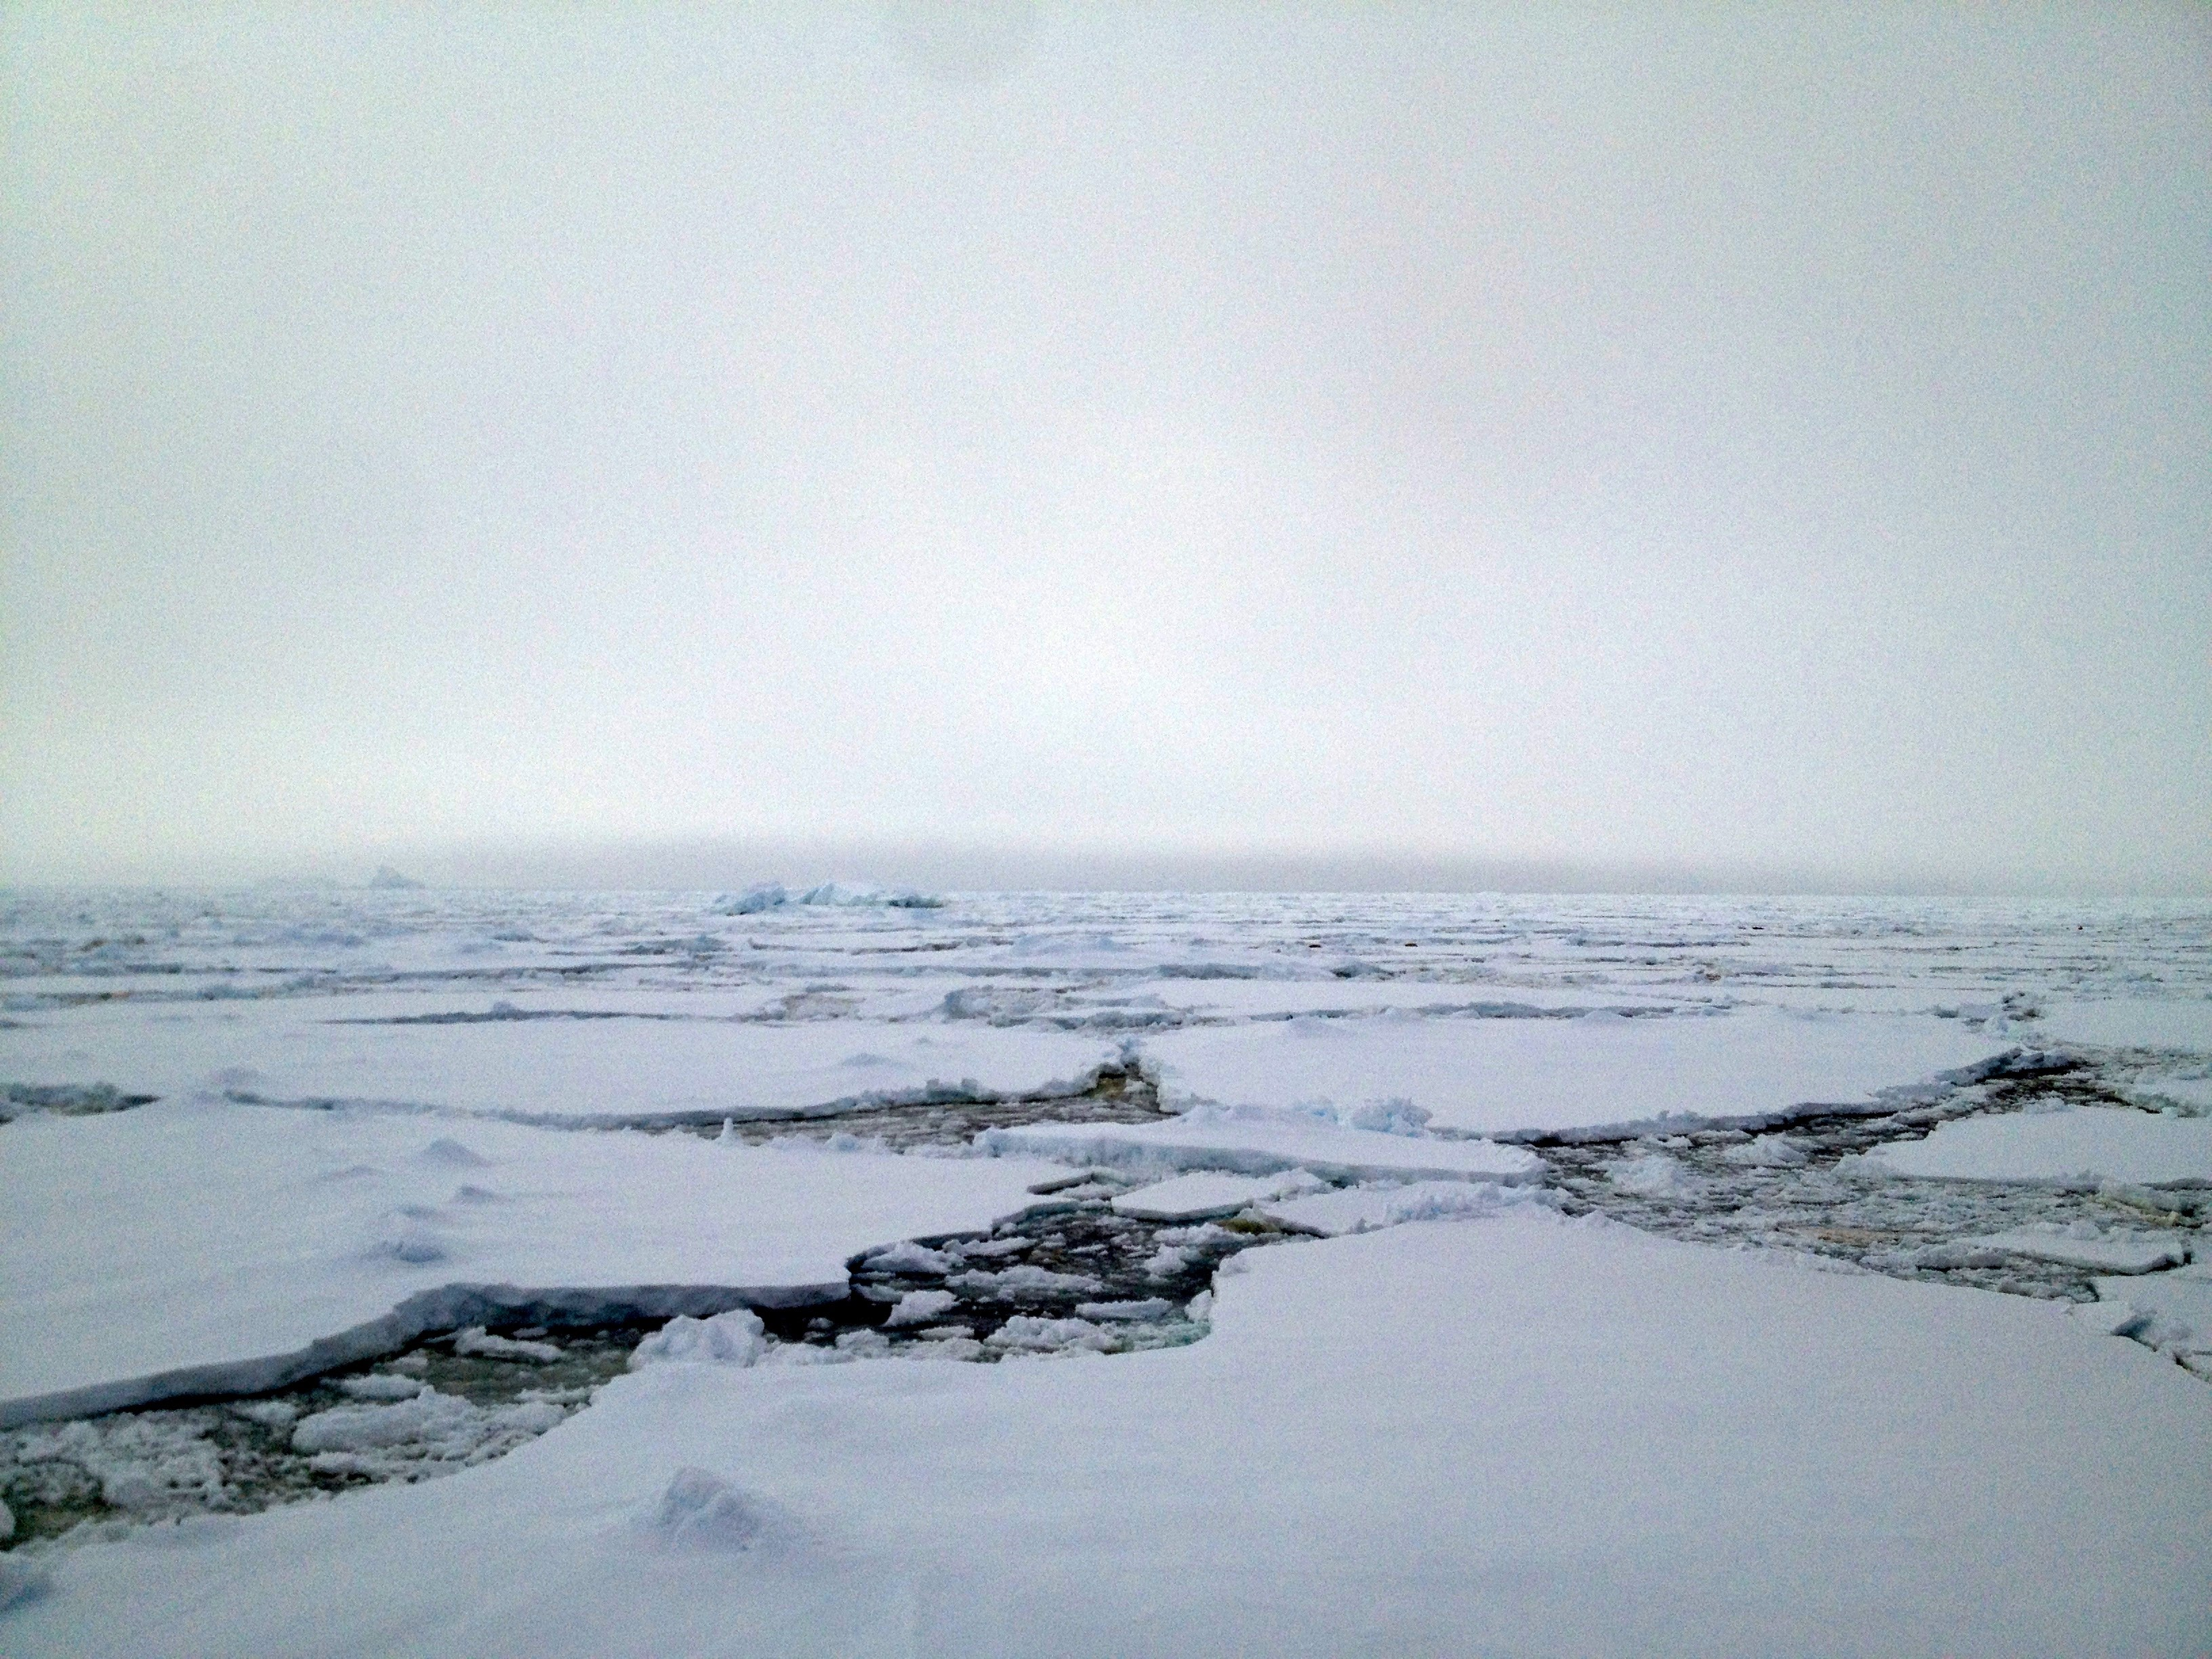 The Antarctic Peninsula is cooling… for now